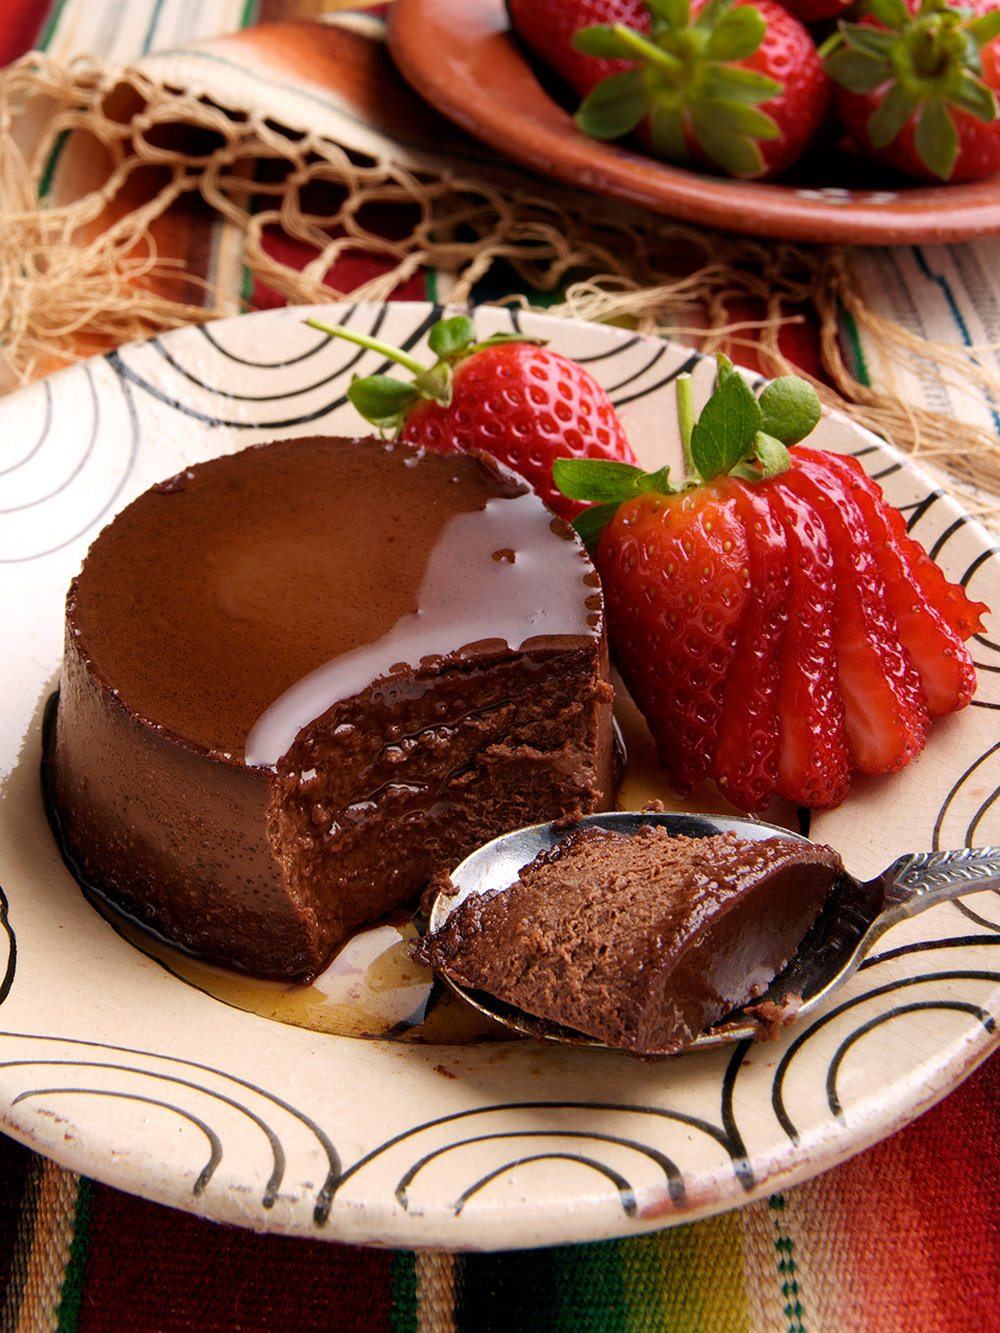 Chocolate creme caramel